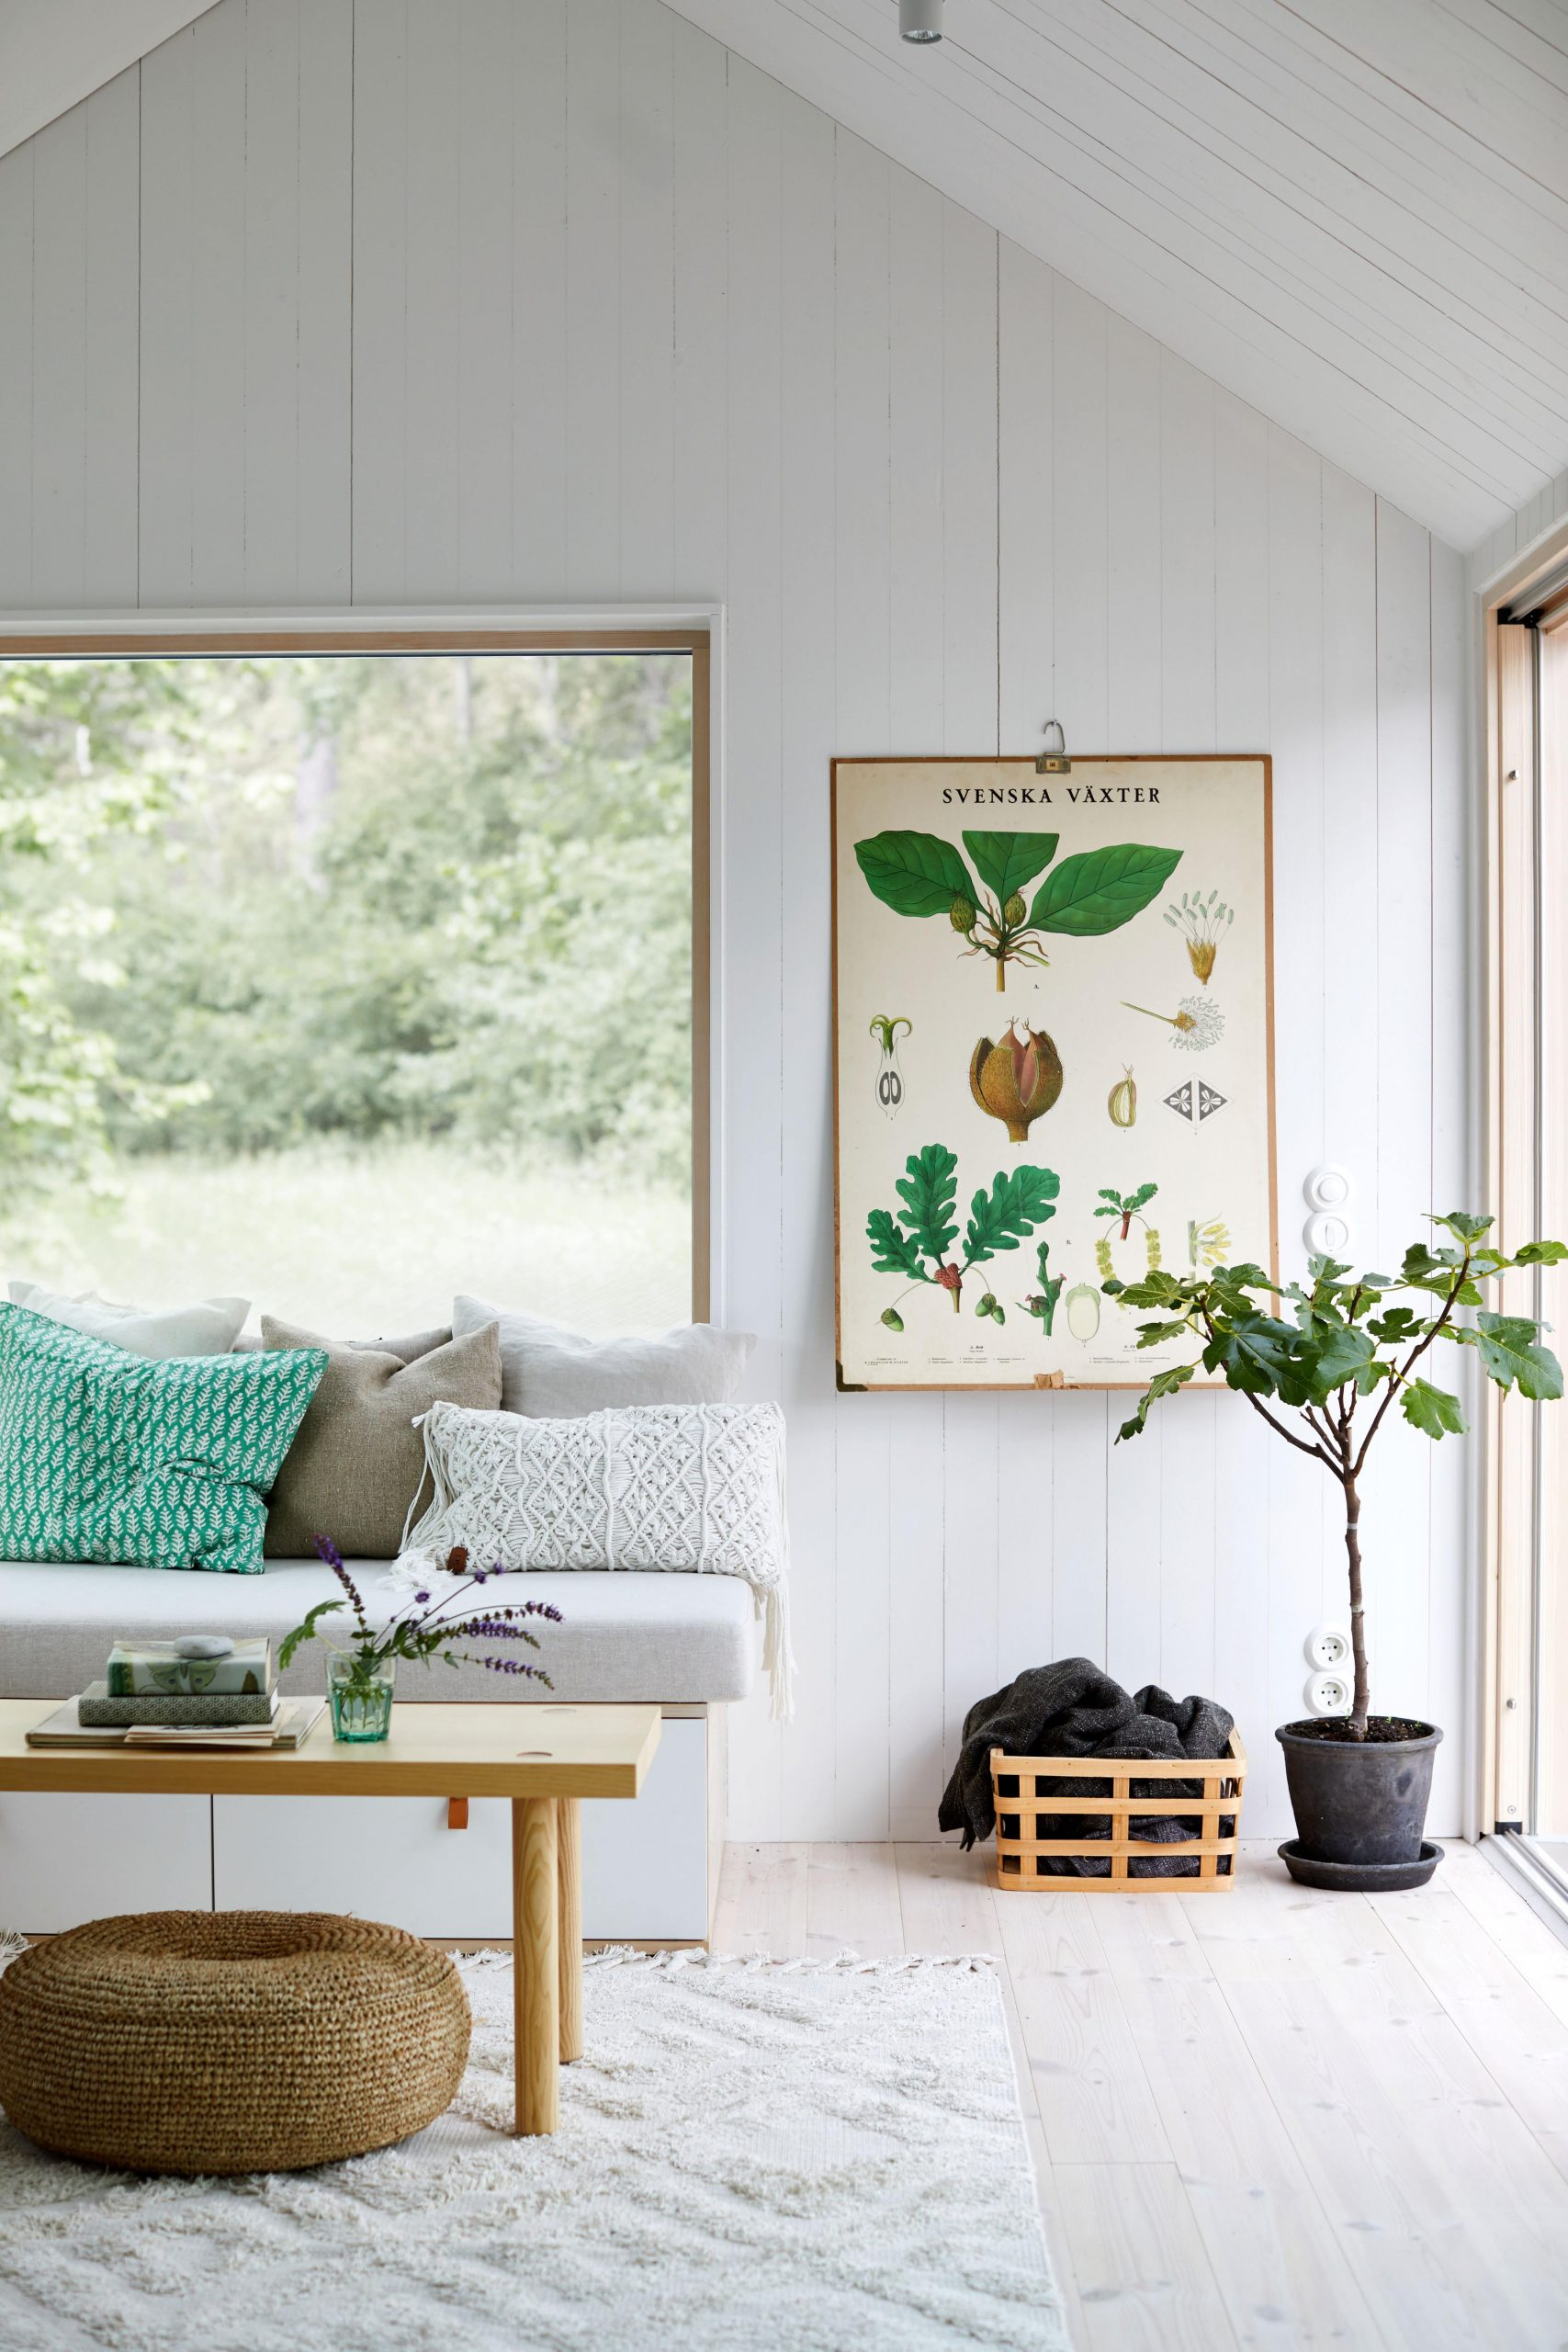 Exceptionnel It Will Inspire You To Stay At Home, If You Want To Create A Fresh And Very  Bucolic Decoration. Photo: Martin Cederblad